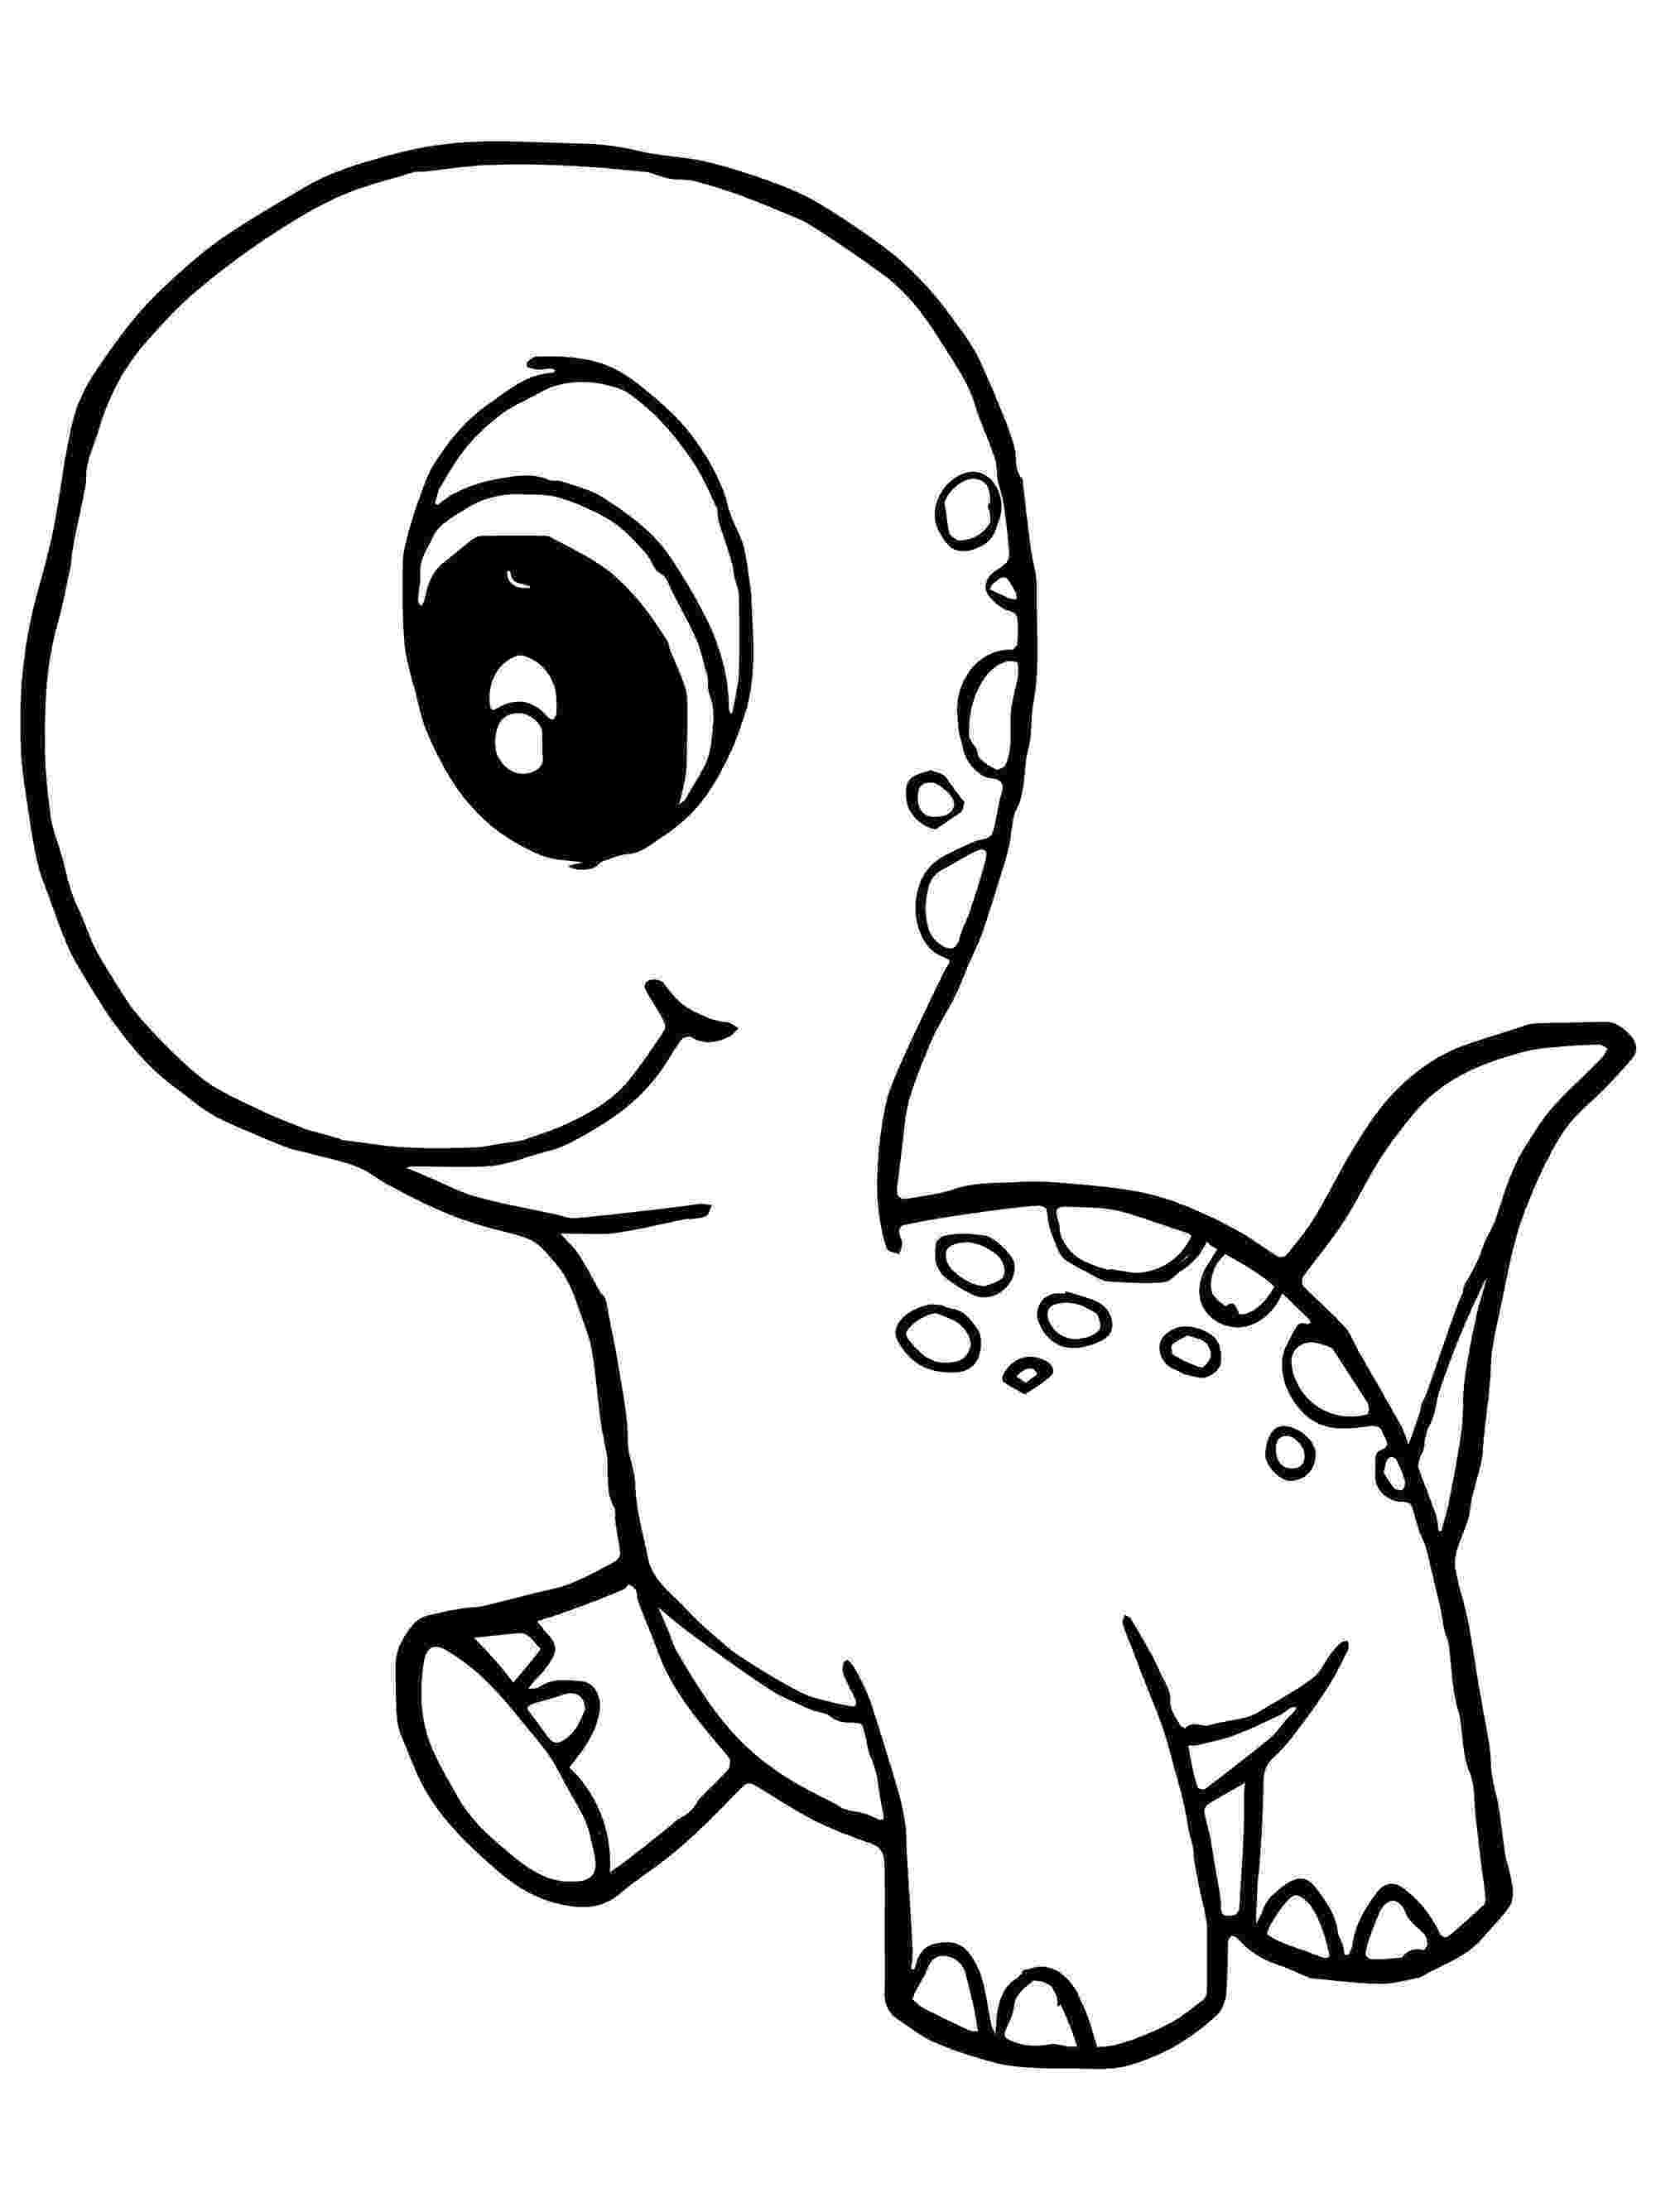 coloring pages of dinosaurs for preschoolers free printable dinosaur coloring pages itsy bitsy fun preschoolers of pages coloring dinosaurs for